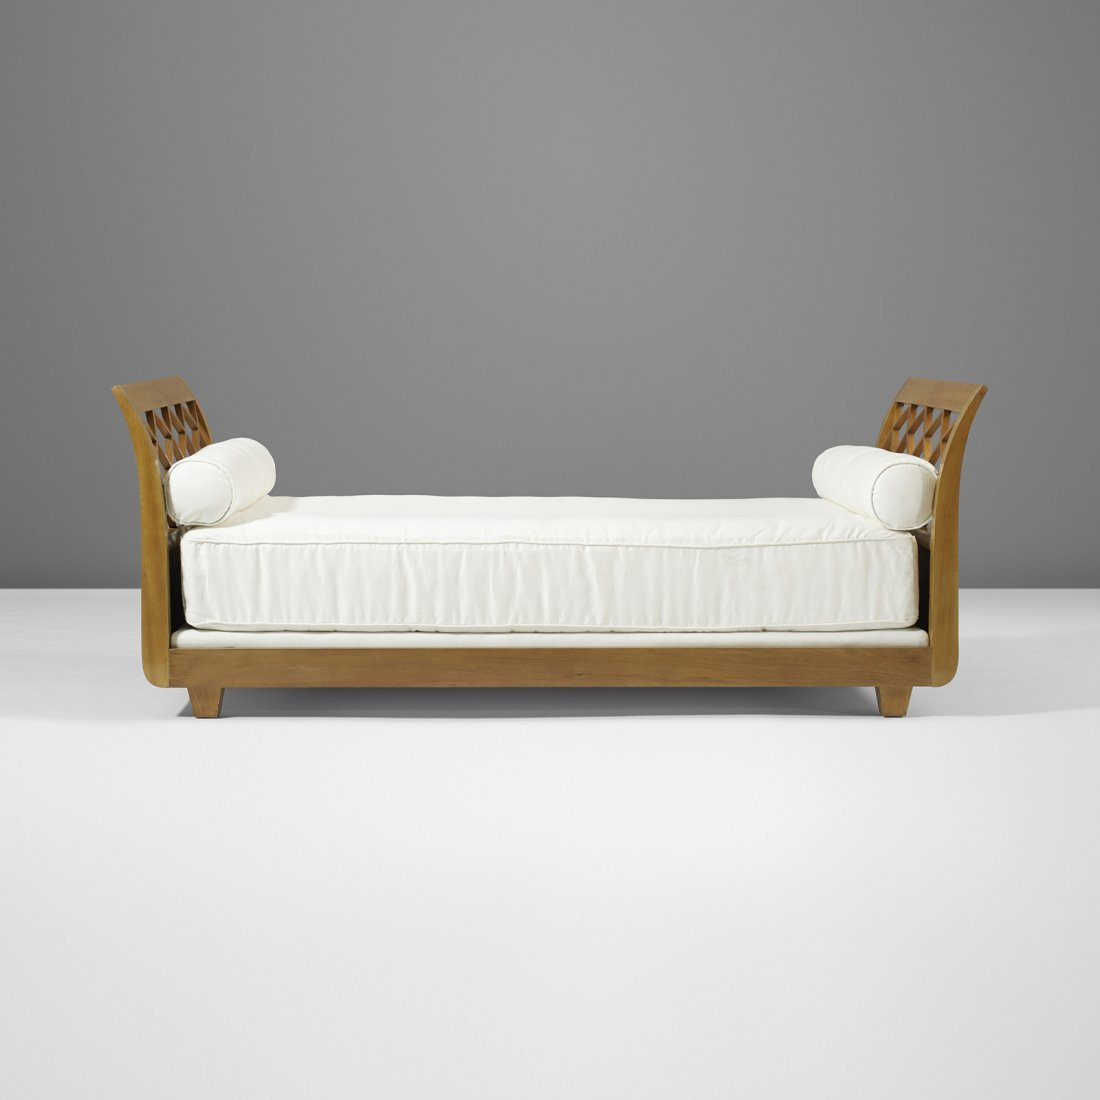 Jean Royère Croisillon daybed